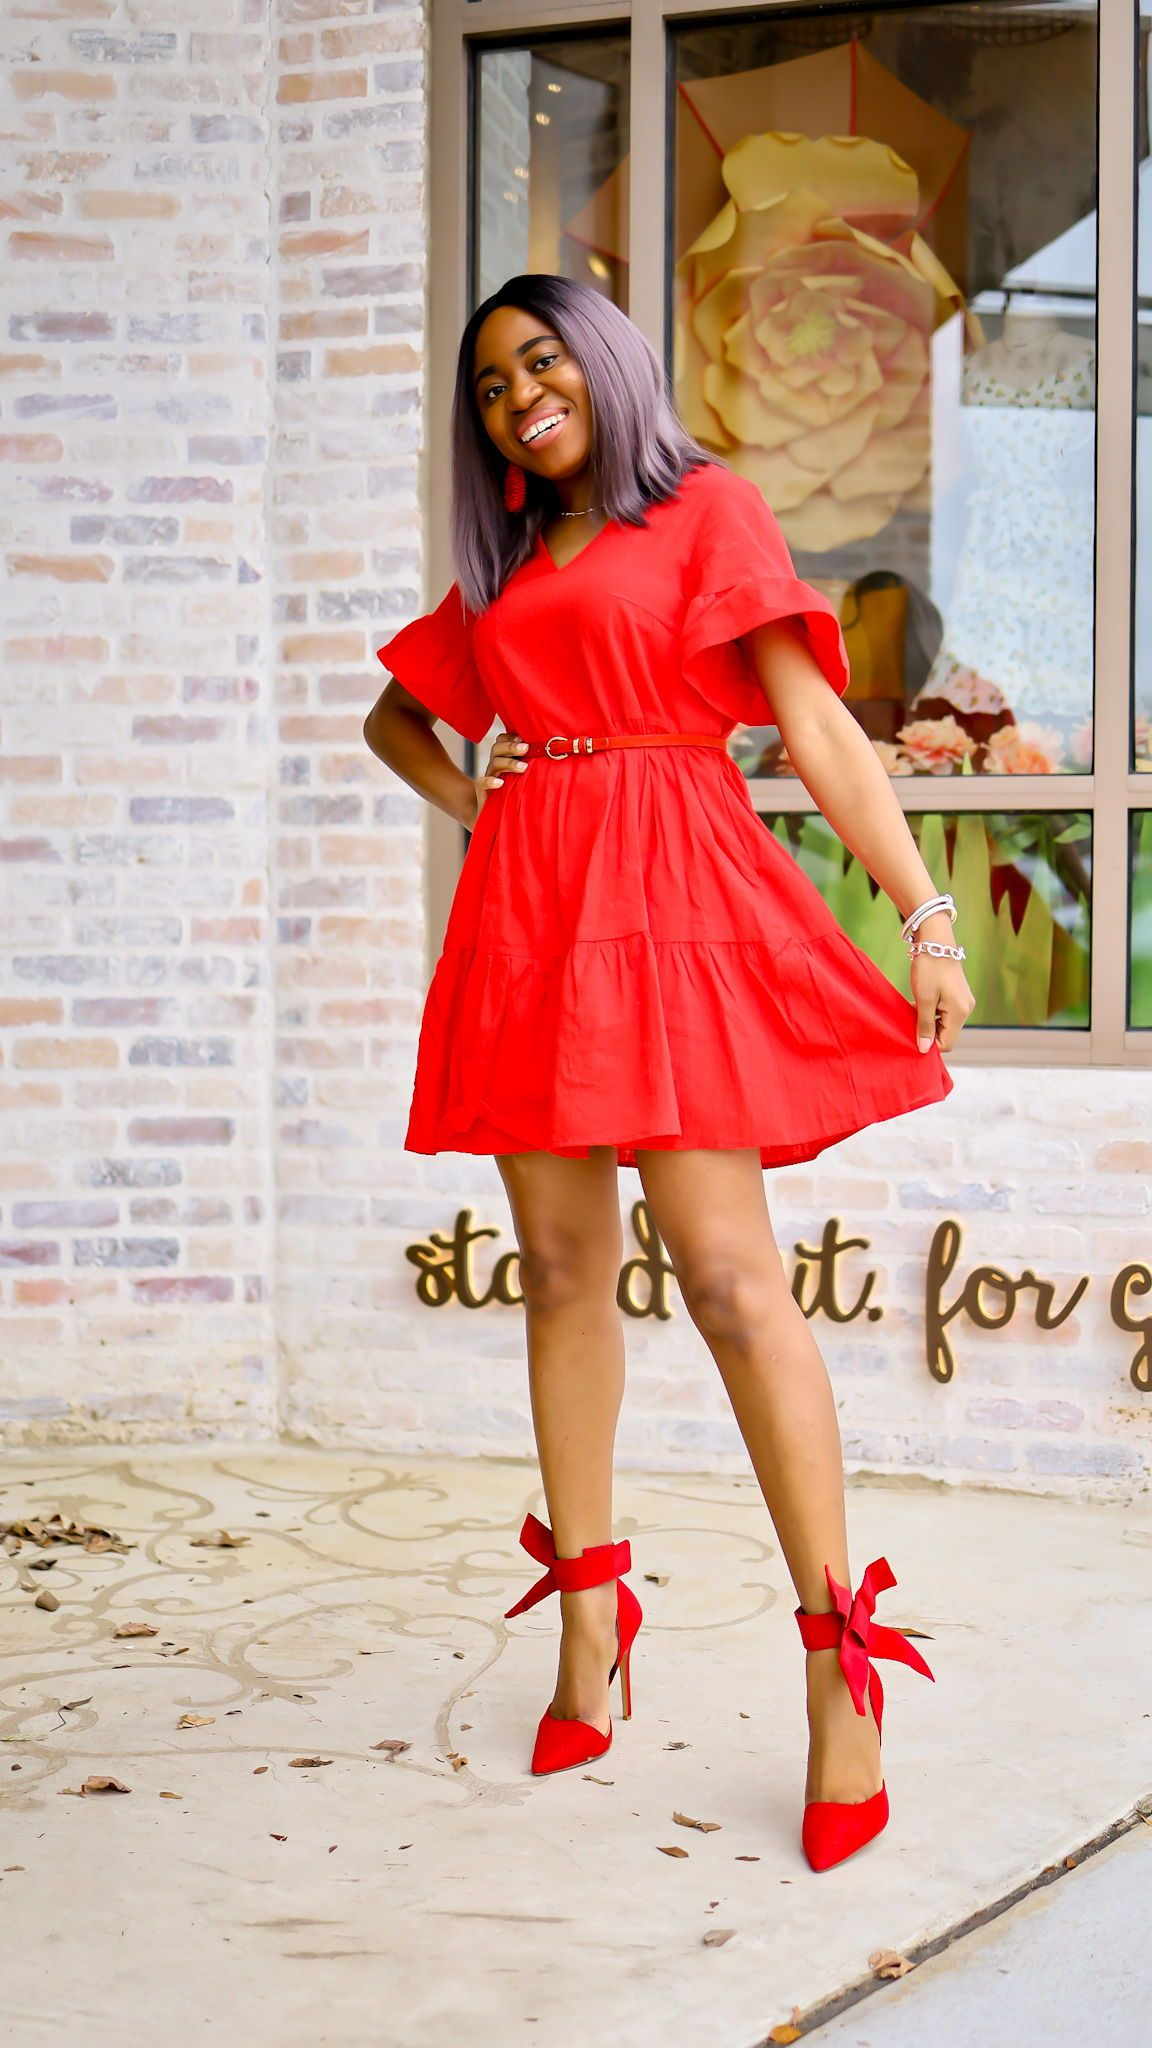 7 Red Dress Outfit Ideas To Steal In 2021 For Different Occasions Red Dress Outfit Red Shift Dress Red Dress [ 2048 x 1152 Pixel ]